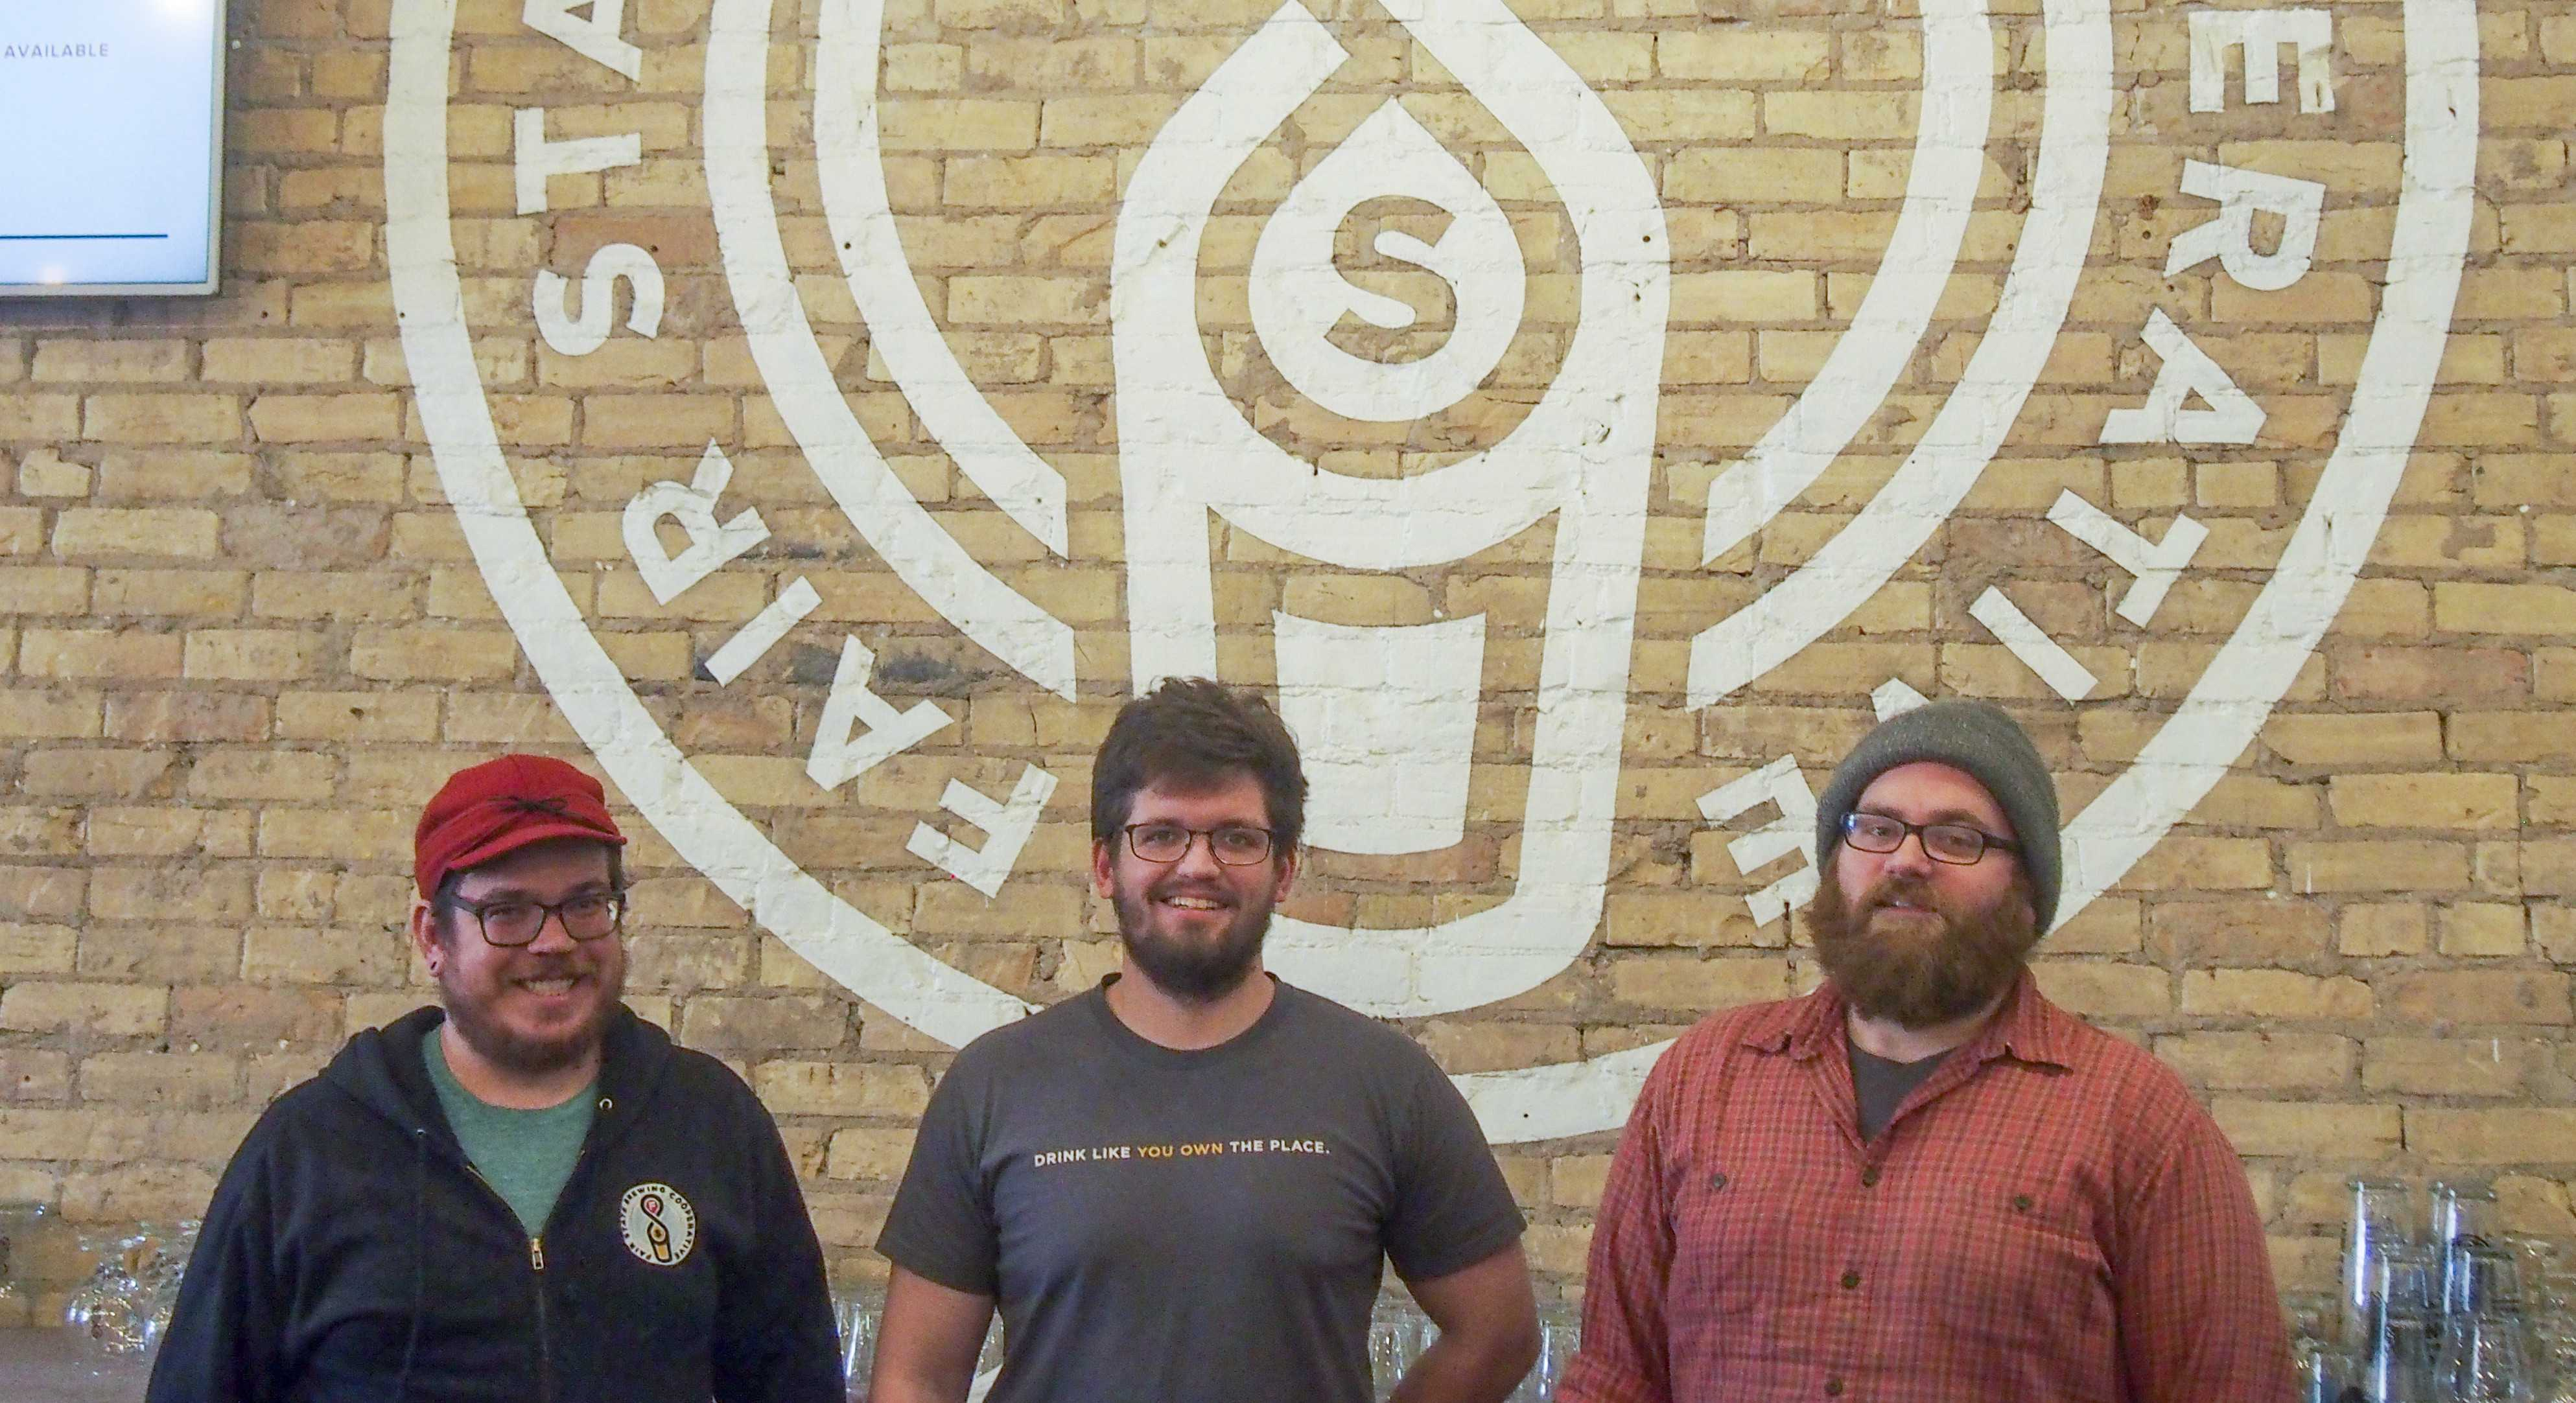 On tap with Matt Hauck '06: Co-Founder of the Fair State Brewery